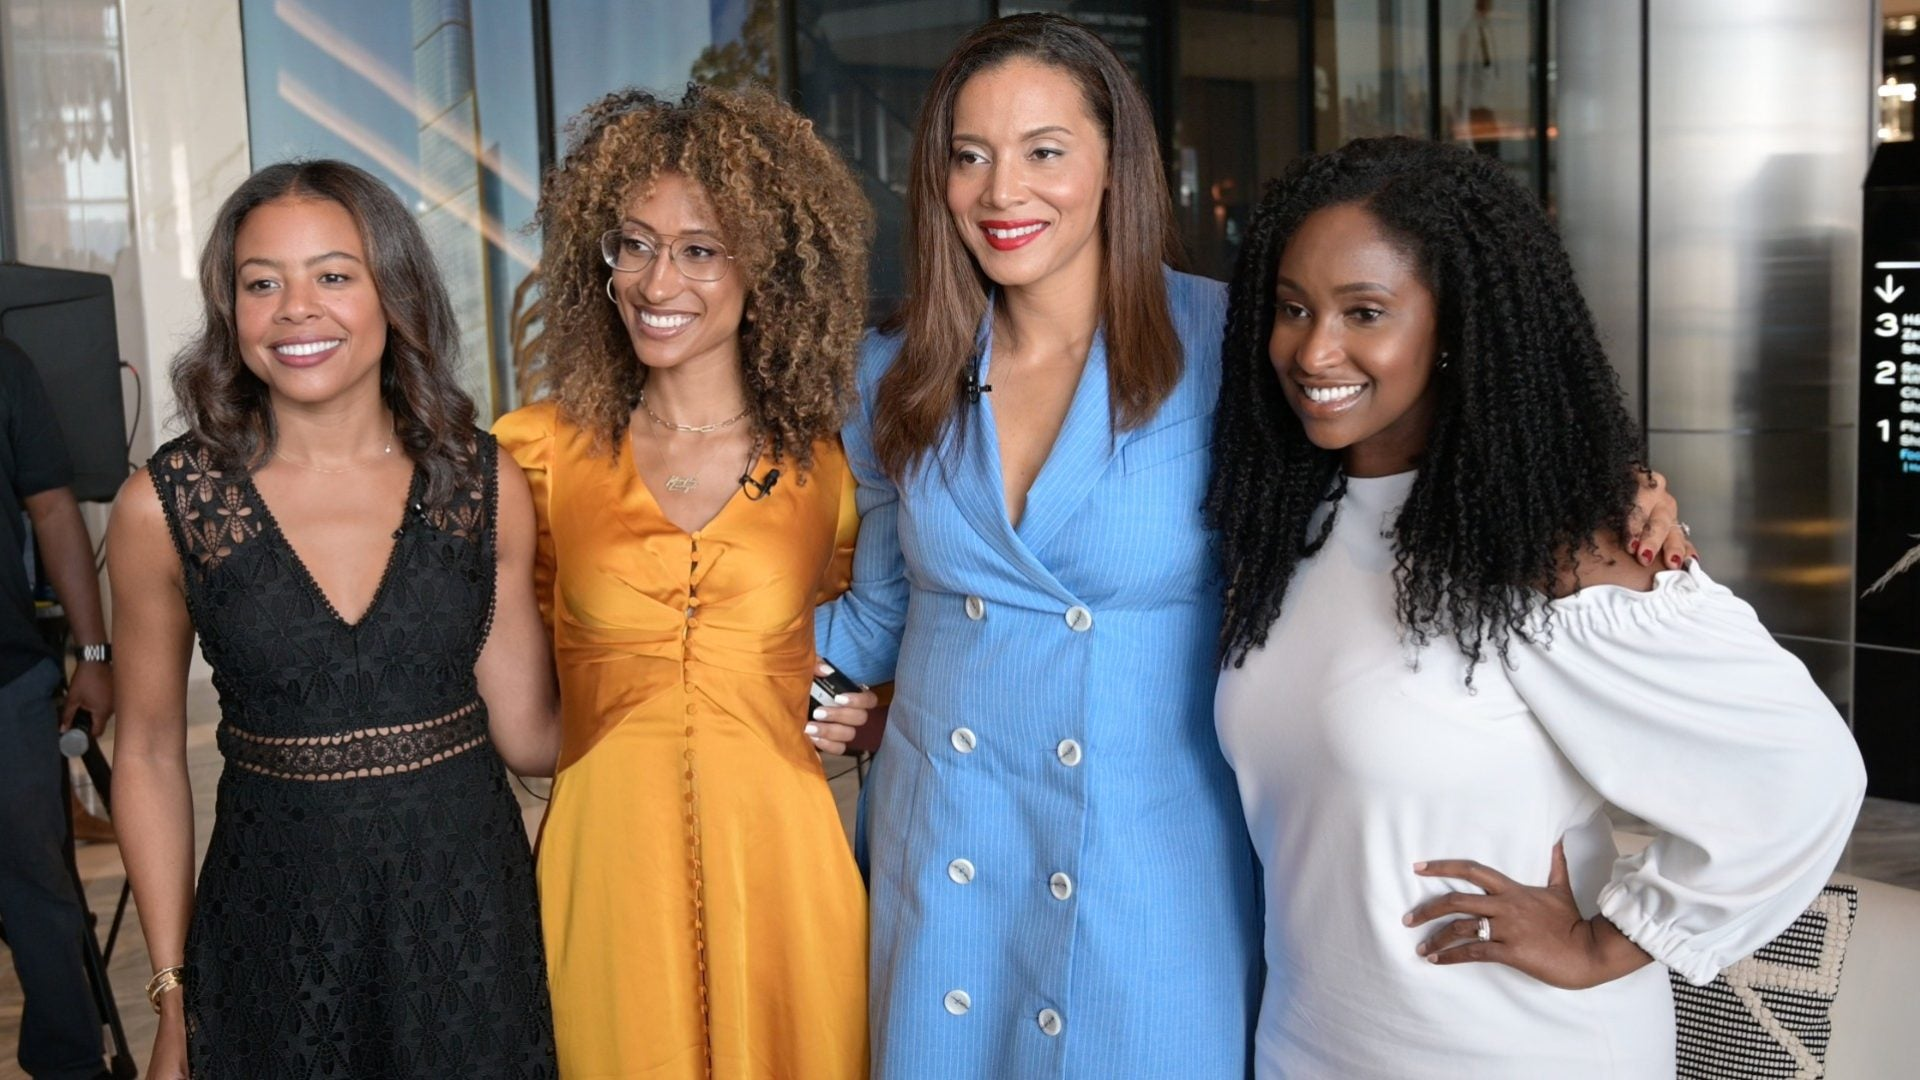 Sephora Hosts Color Up Close Panel On Diversity And Inclusion In Beauty